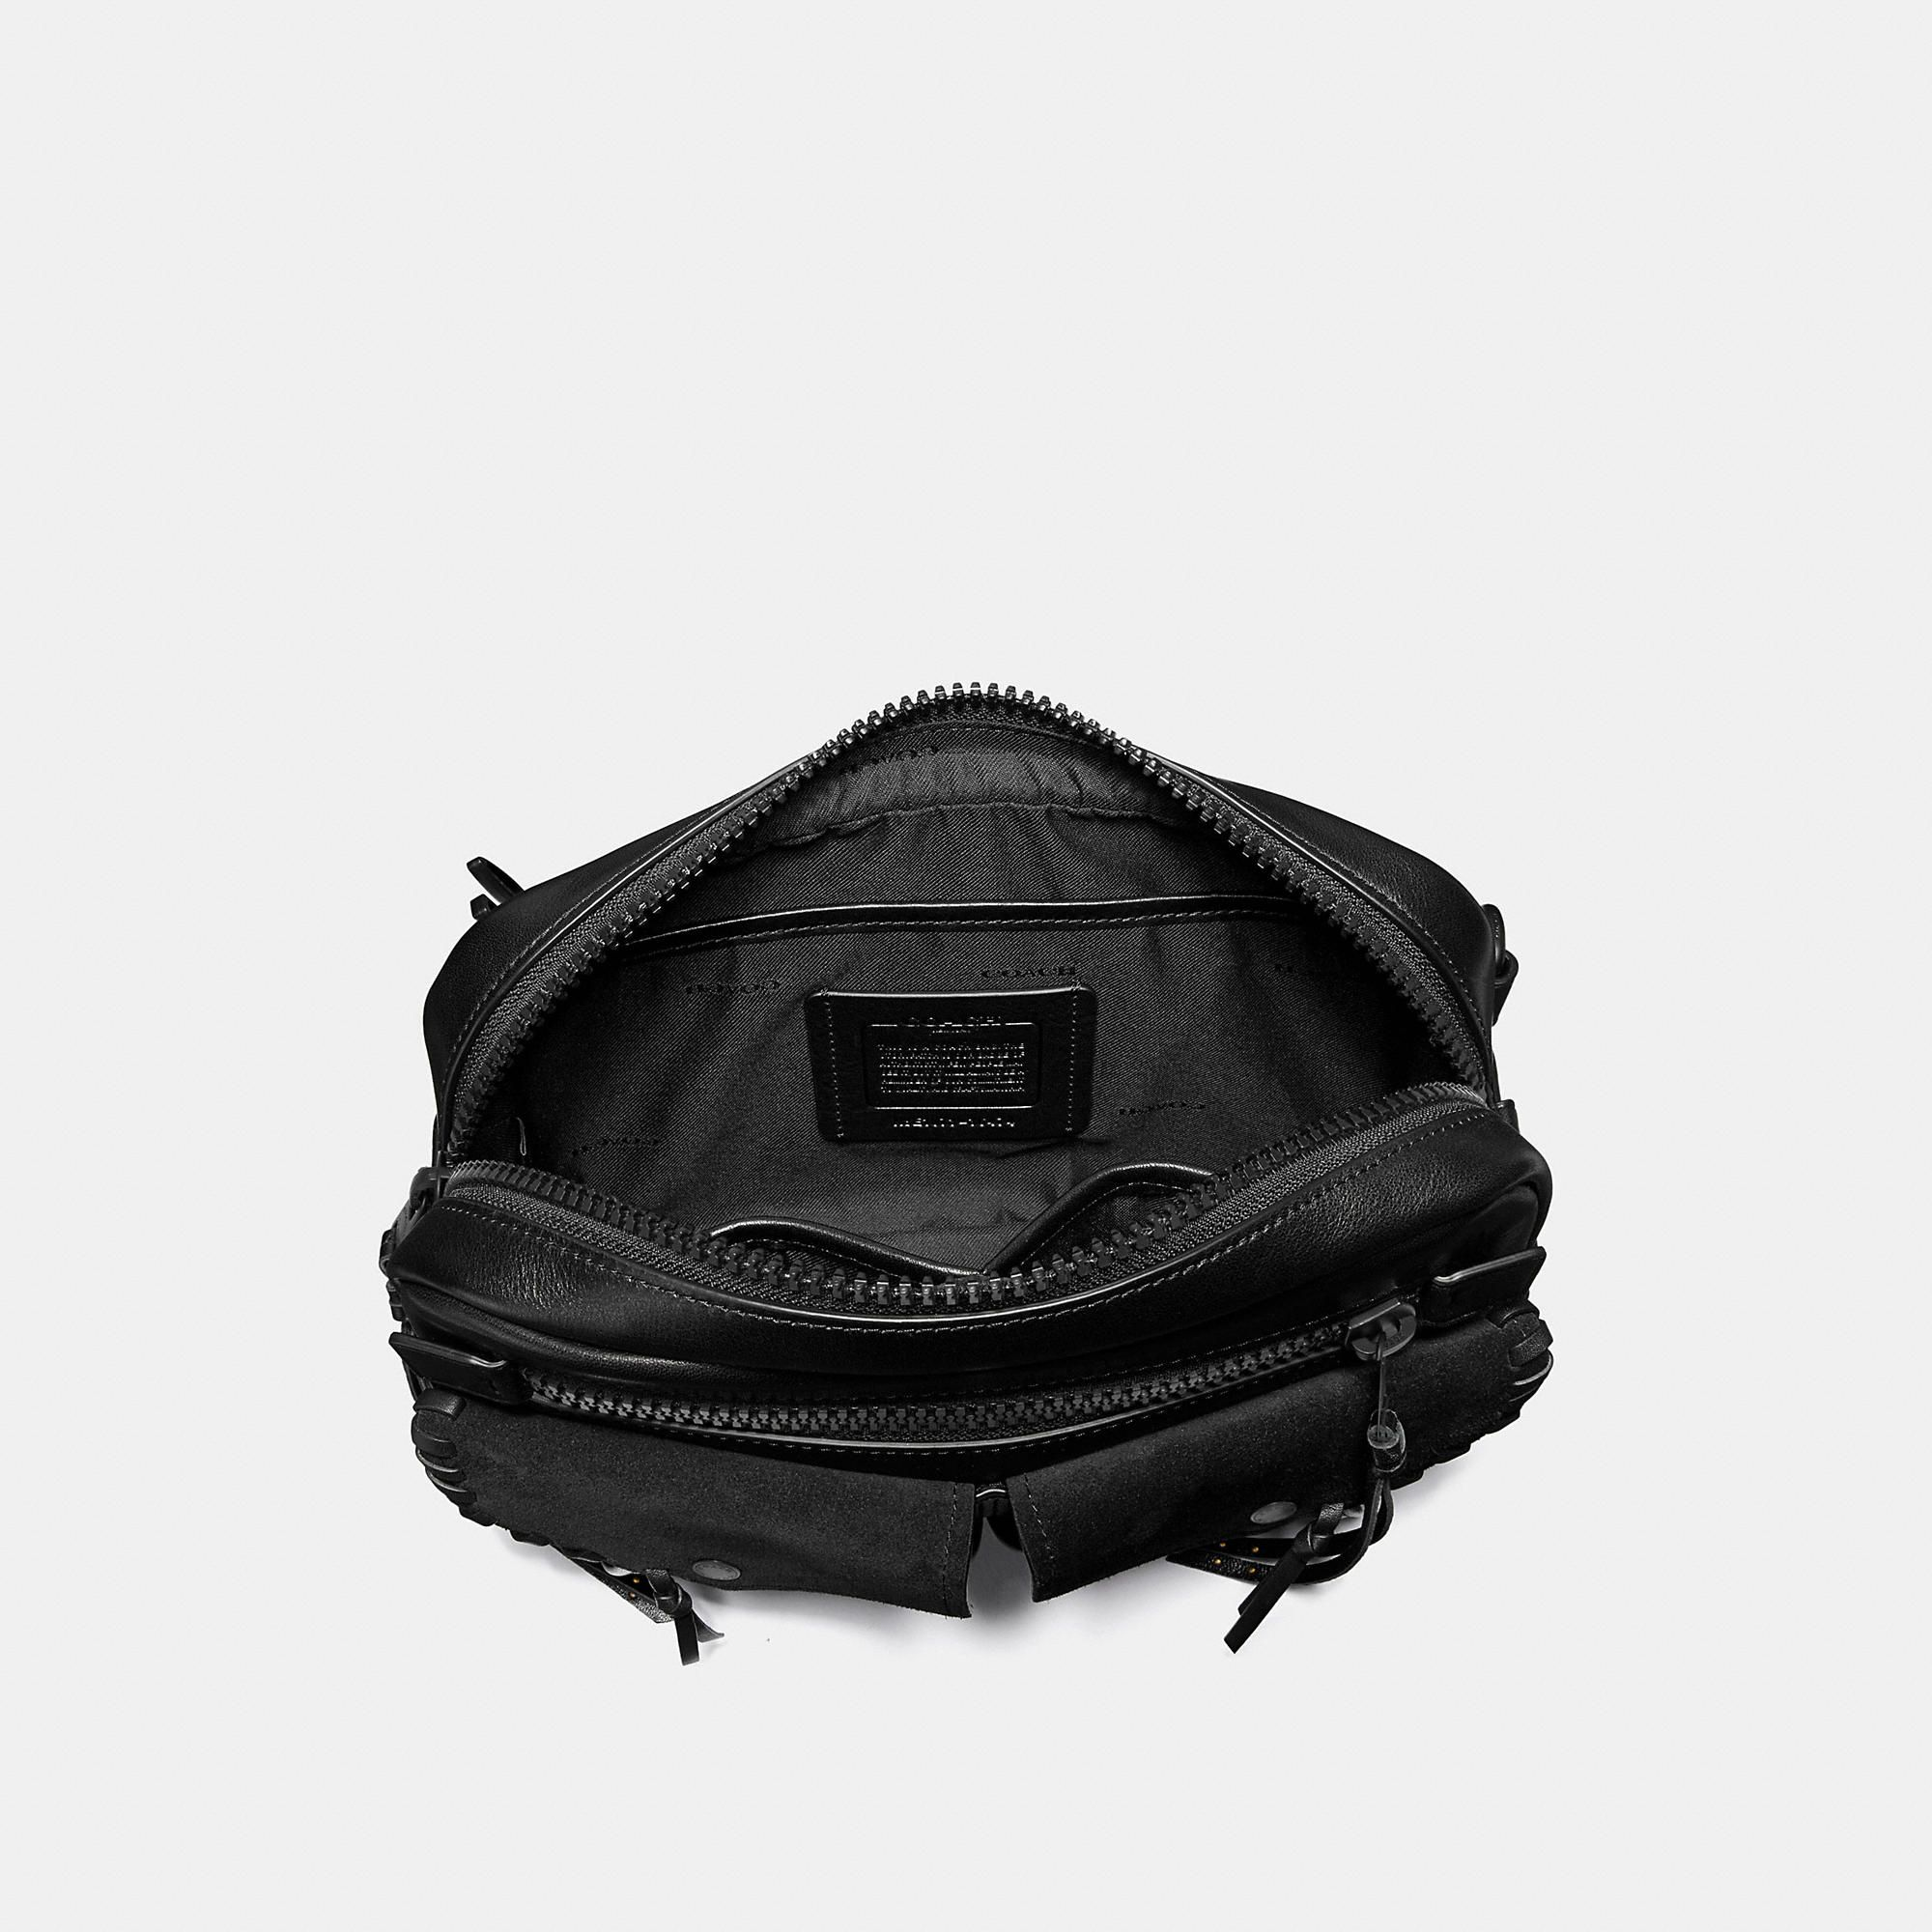 e89692caff3 Utility belt bag 25 in 2019 | Products | Mens leather handbags, Bags ...